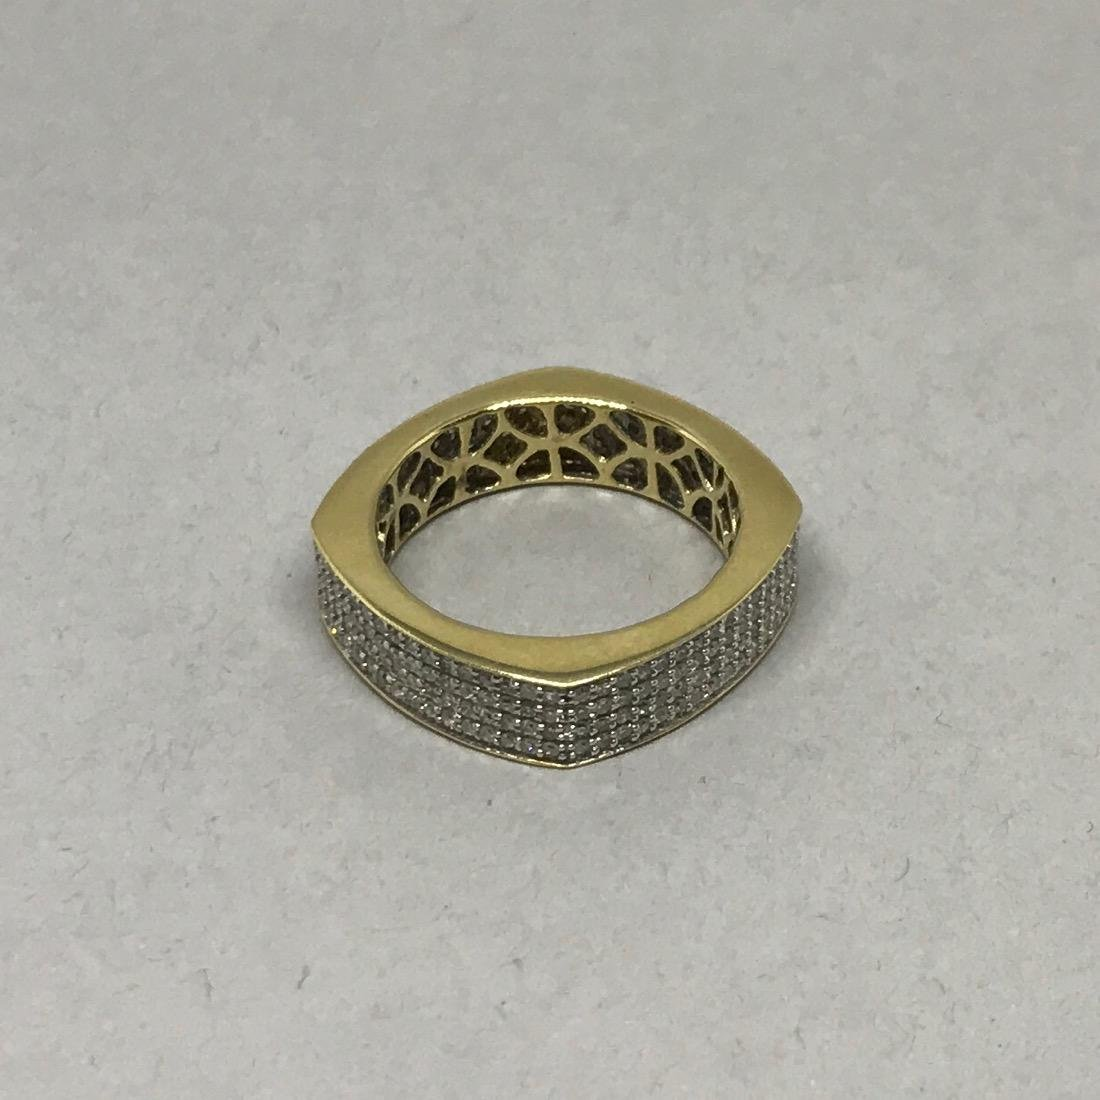 14Kt Gold Square Band with Pave Diamonds - 2